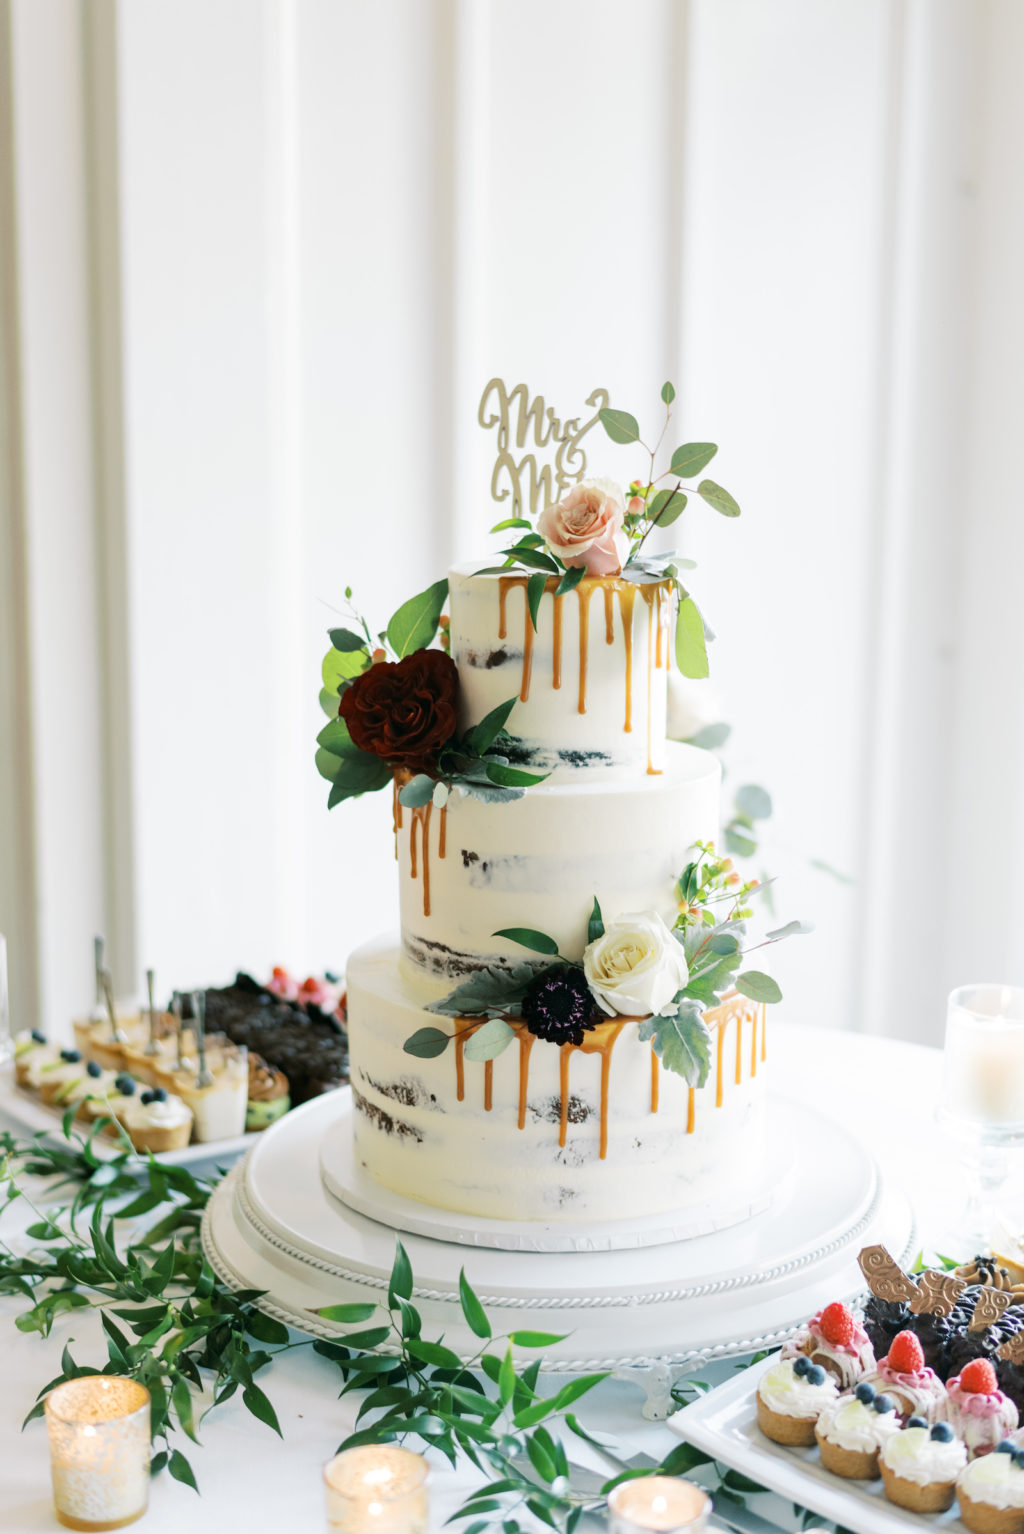 White Semi Naked Three Tier Gold Drip Wedding Cake with Dark Purple and Ivory Roses and Greenery, Gold Cake Topper   Tampa Bay Wedding Cake The Artistic Whisk